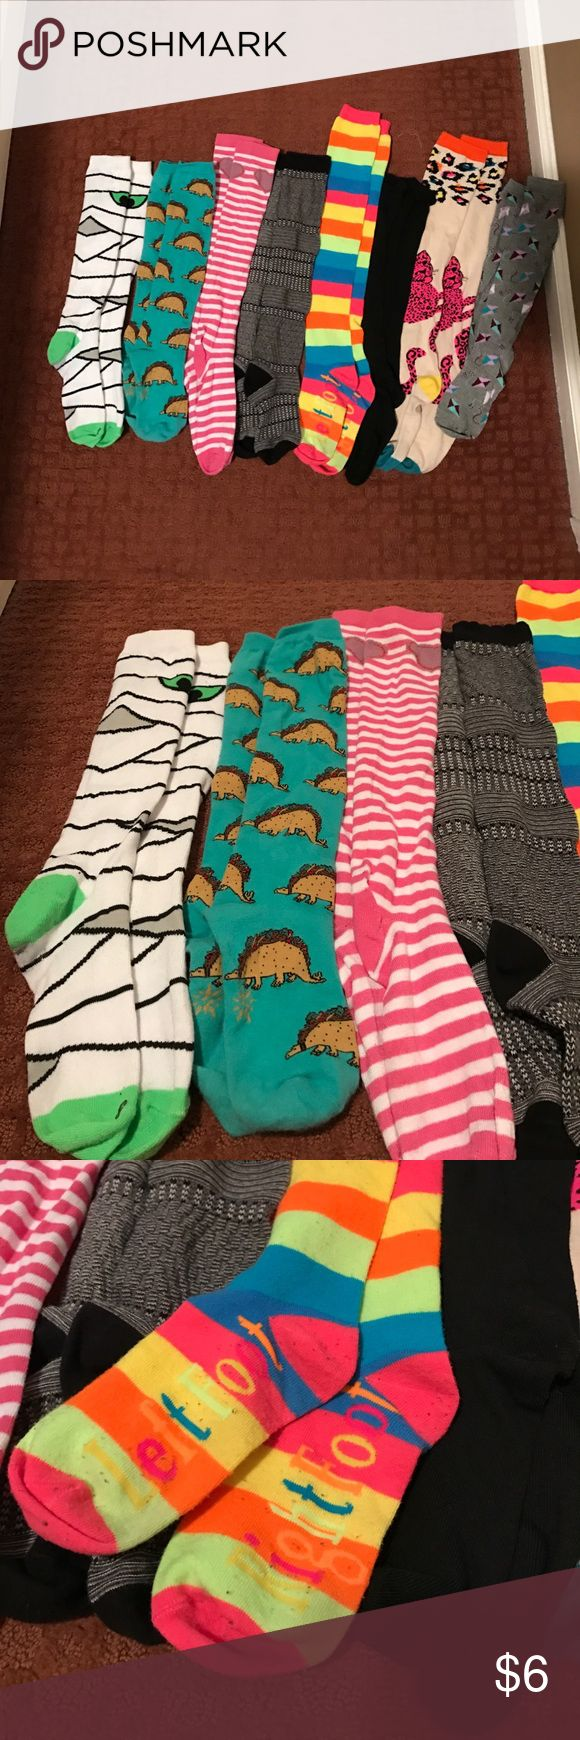 Eight Pairs of High Socks Mummy socks. Taco Dinosaur socks. Striped heart socks. Black gray thick socks. Neon striped left foot right foot socks. Black ruffle top socks. Cheetah socks. Kite socks. ALL socks are knee high or a bit below the knee. Few pairs have been worn more than 5 times. From a smoke-free and pet-free home. Other